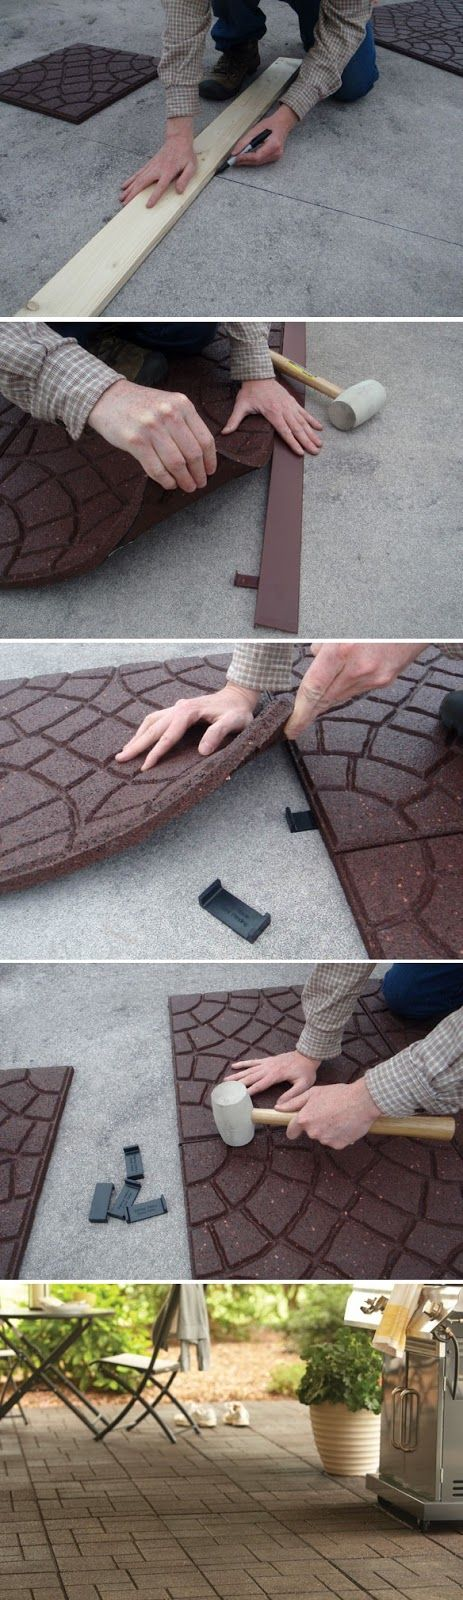 How To Recover Your Patio With Envirotile Patio Makeover